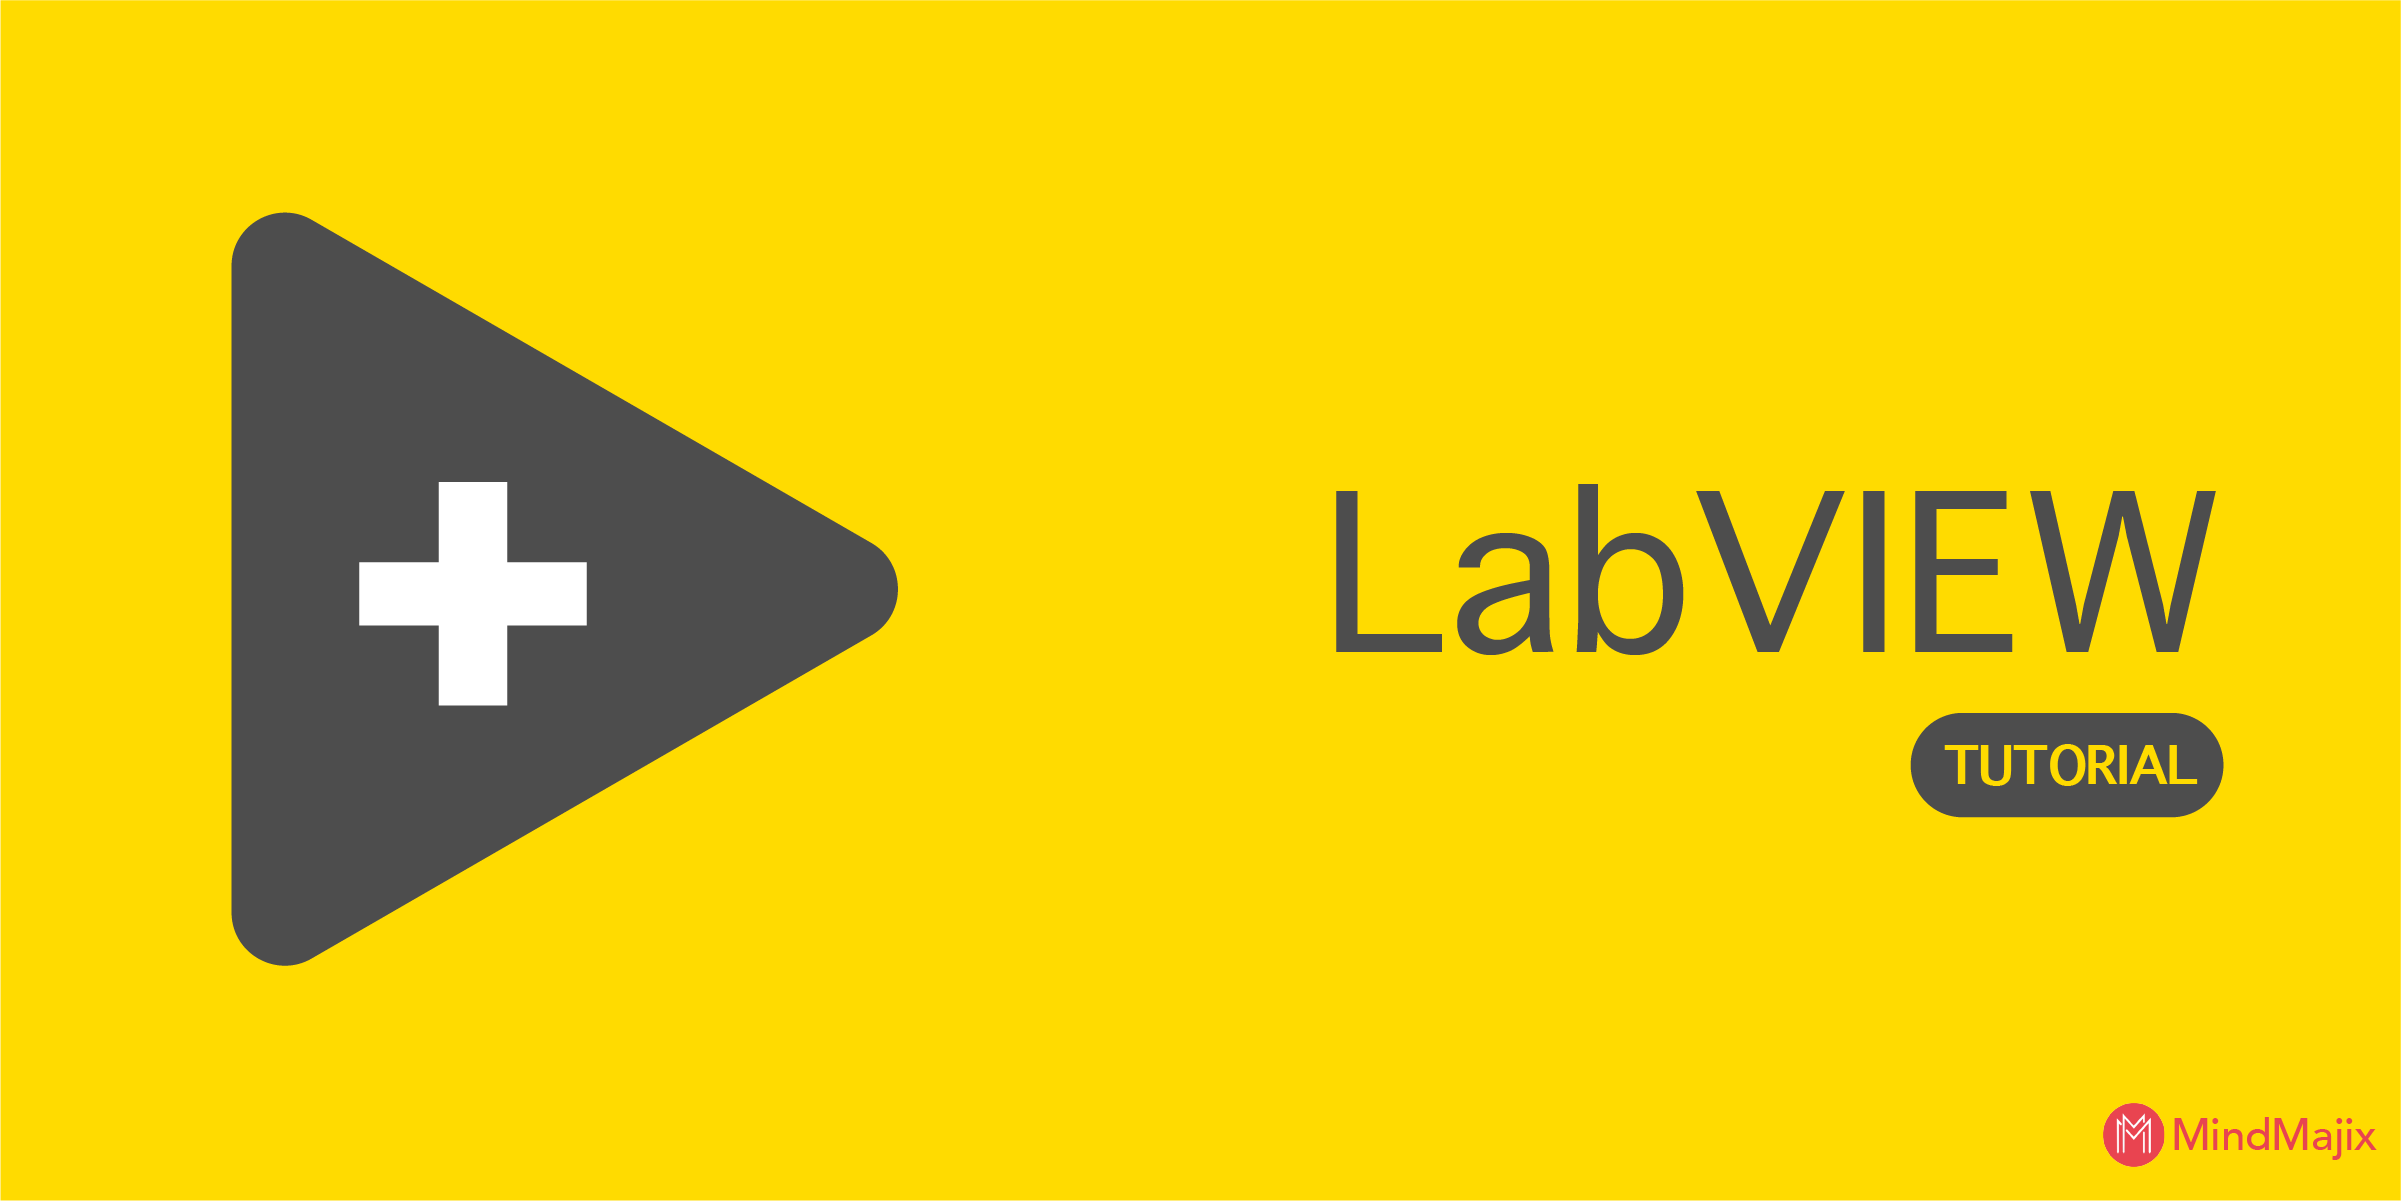 LabVIEW Tutorial